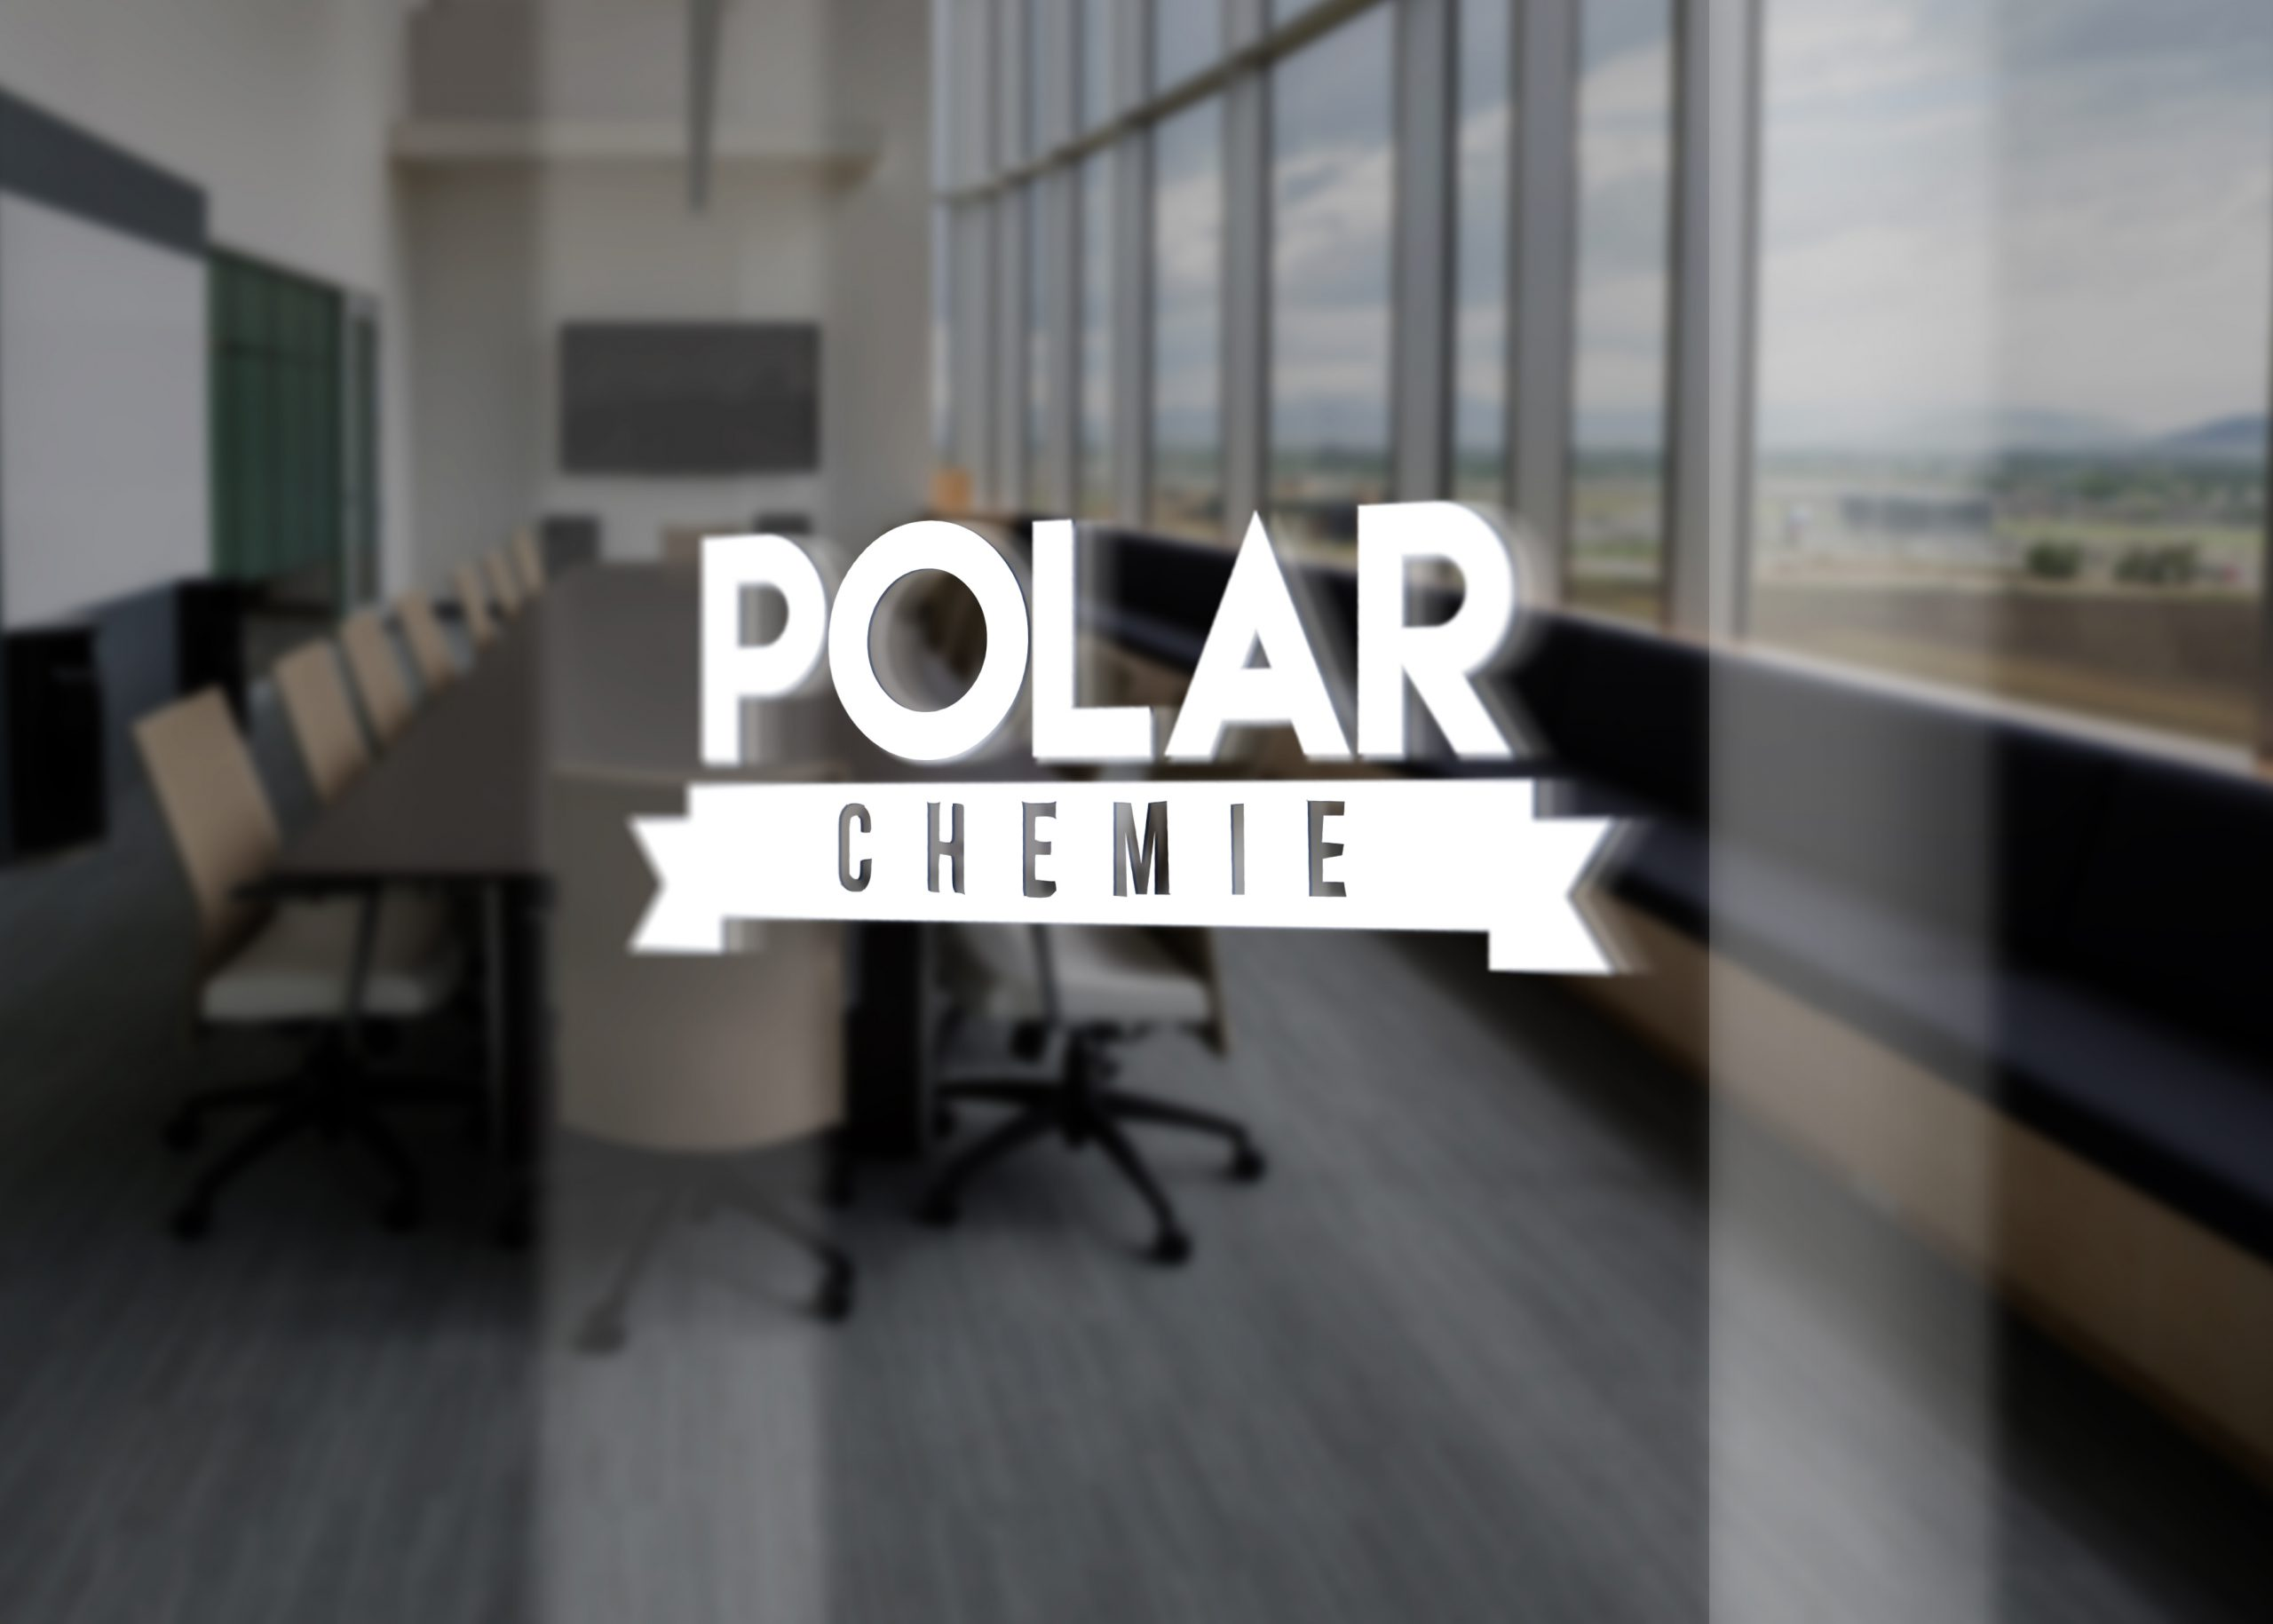 Polar Chemie Glass Door